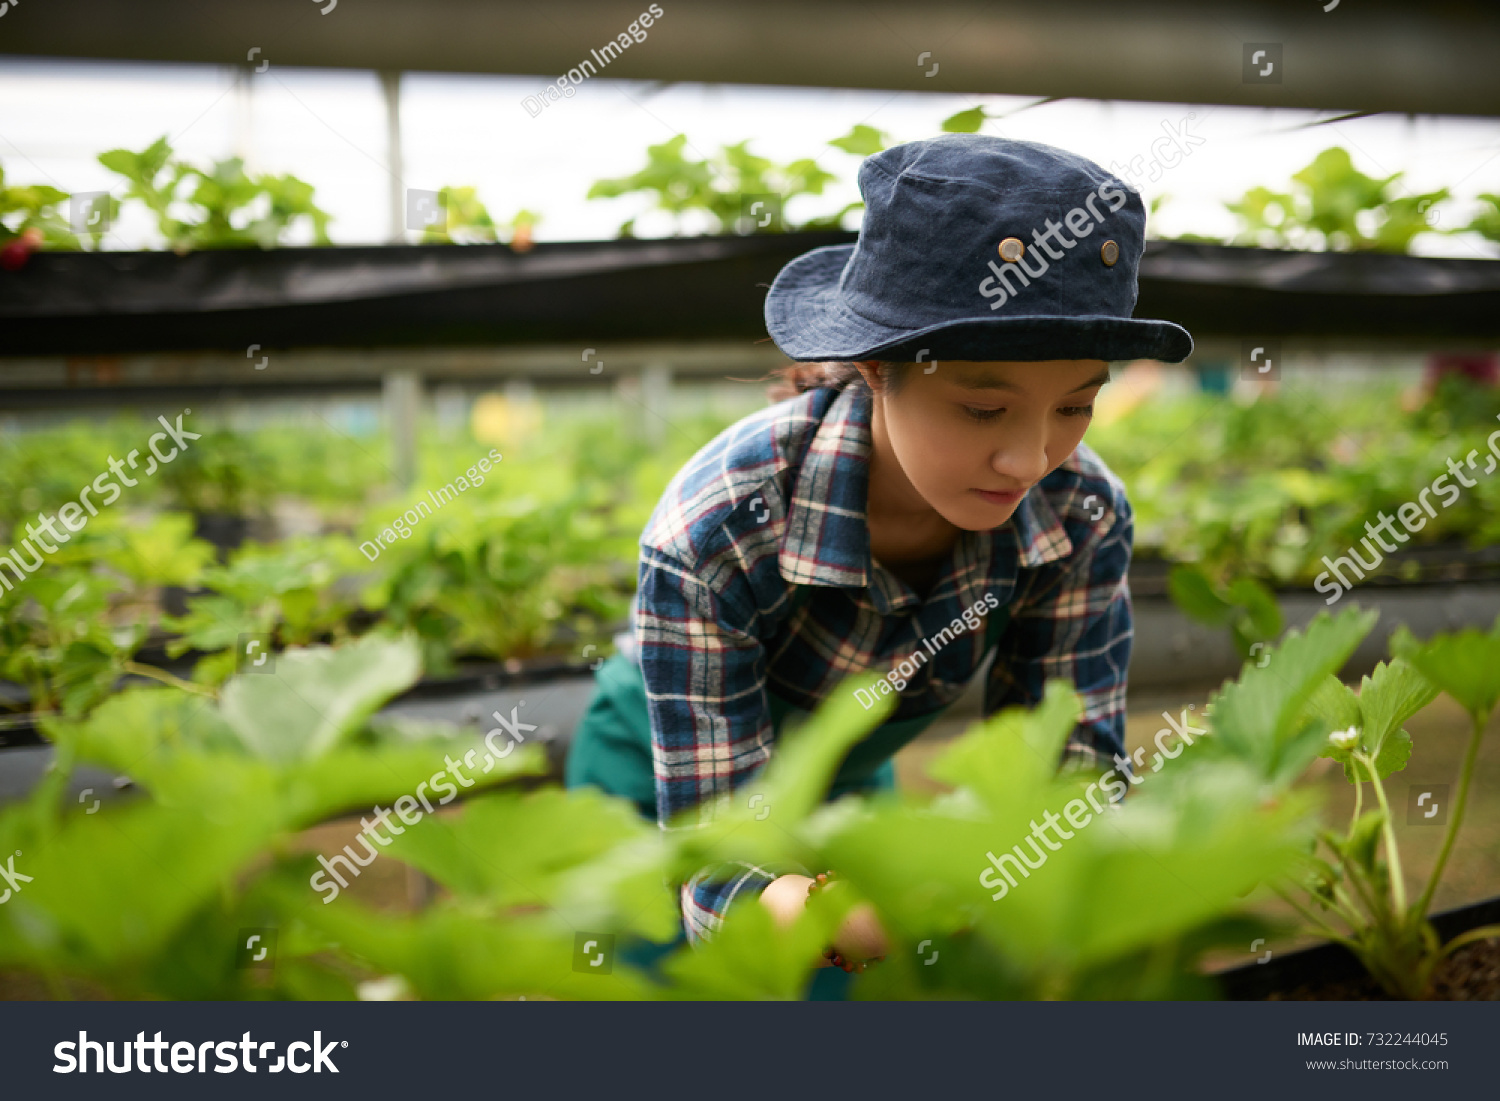 Portrait of hard-working Asian farmer wearing checked shirt and bucket hat  pulling out weeds while working at spacious modern greenhouse - Image 77af39c836c9